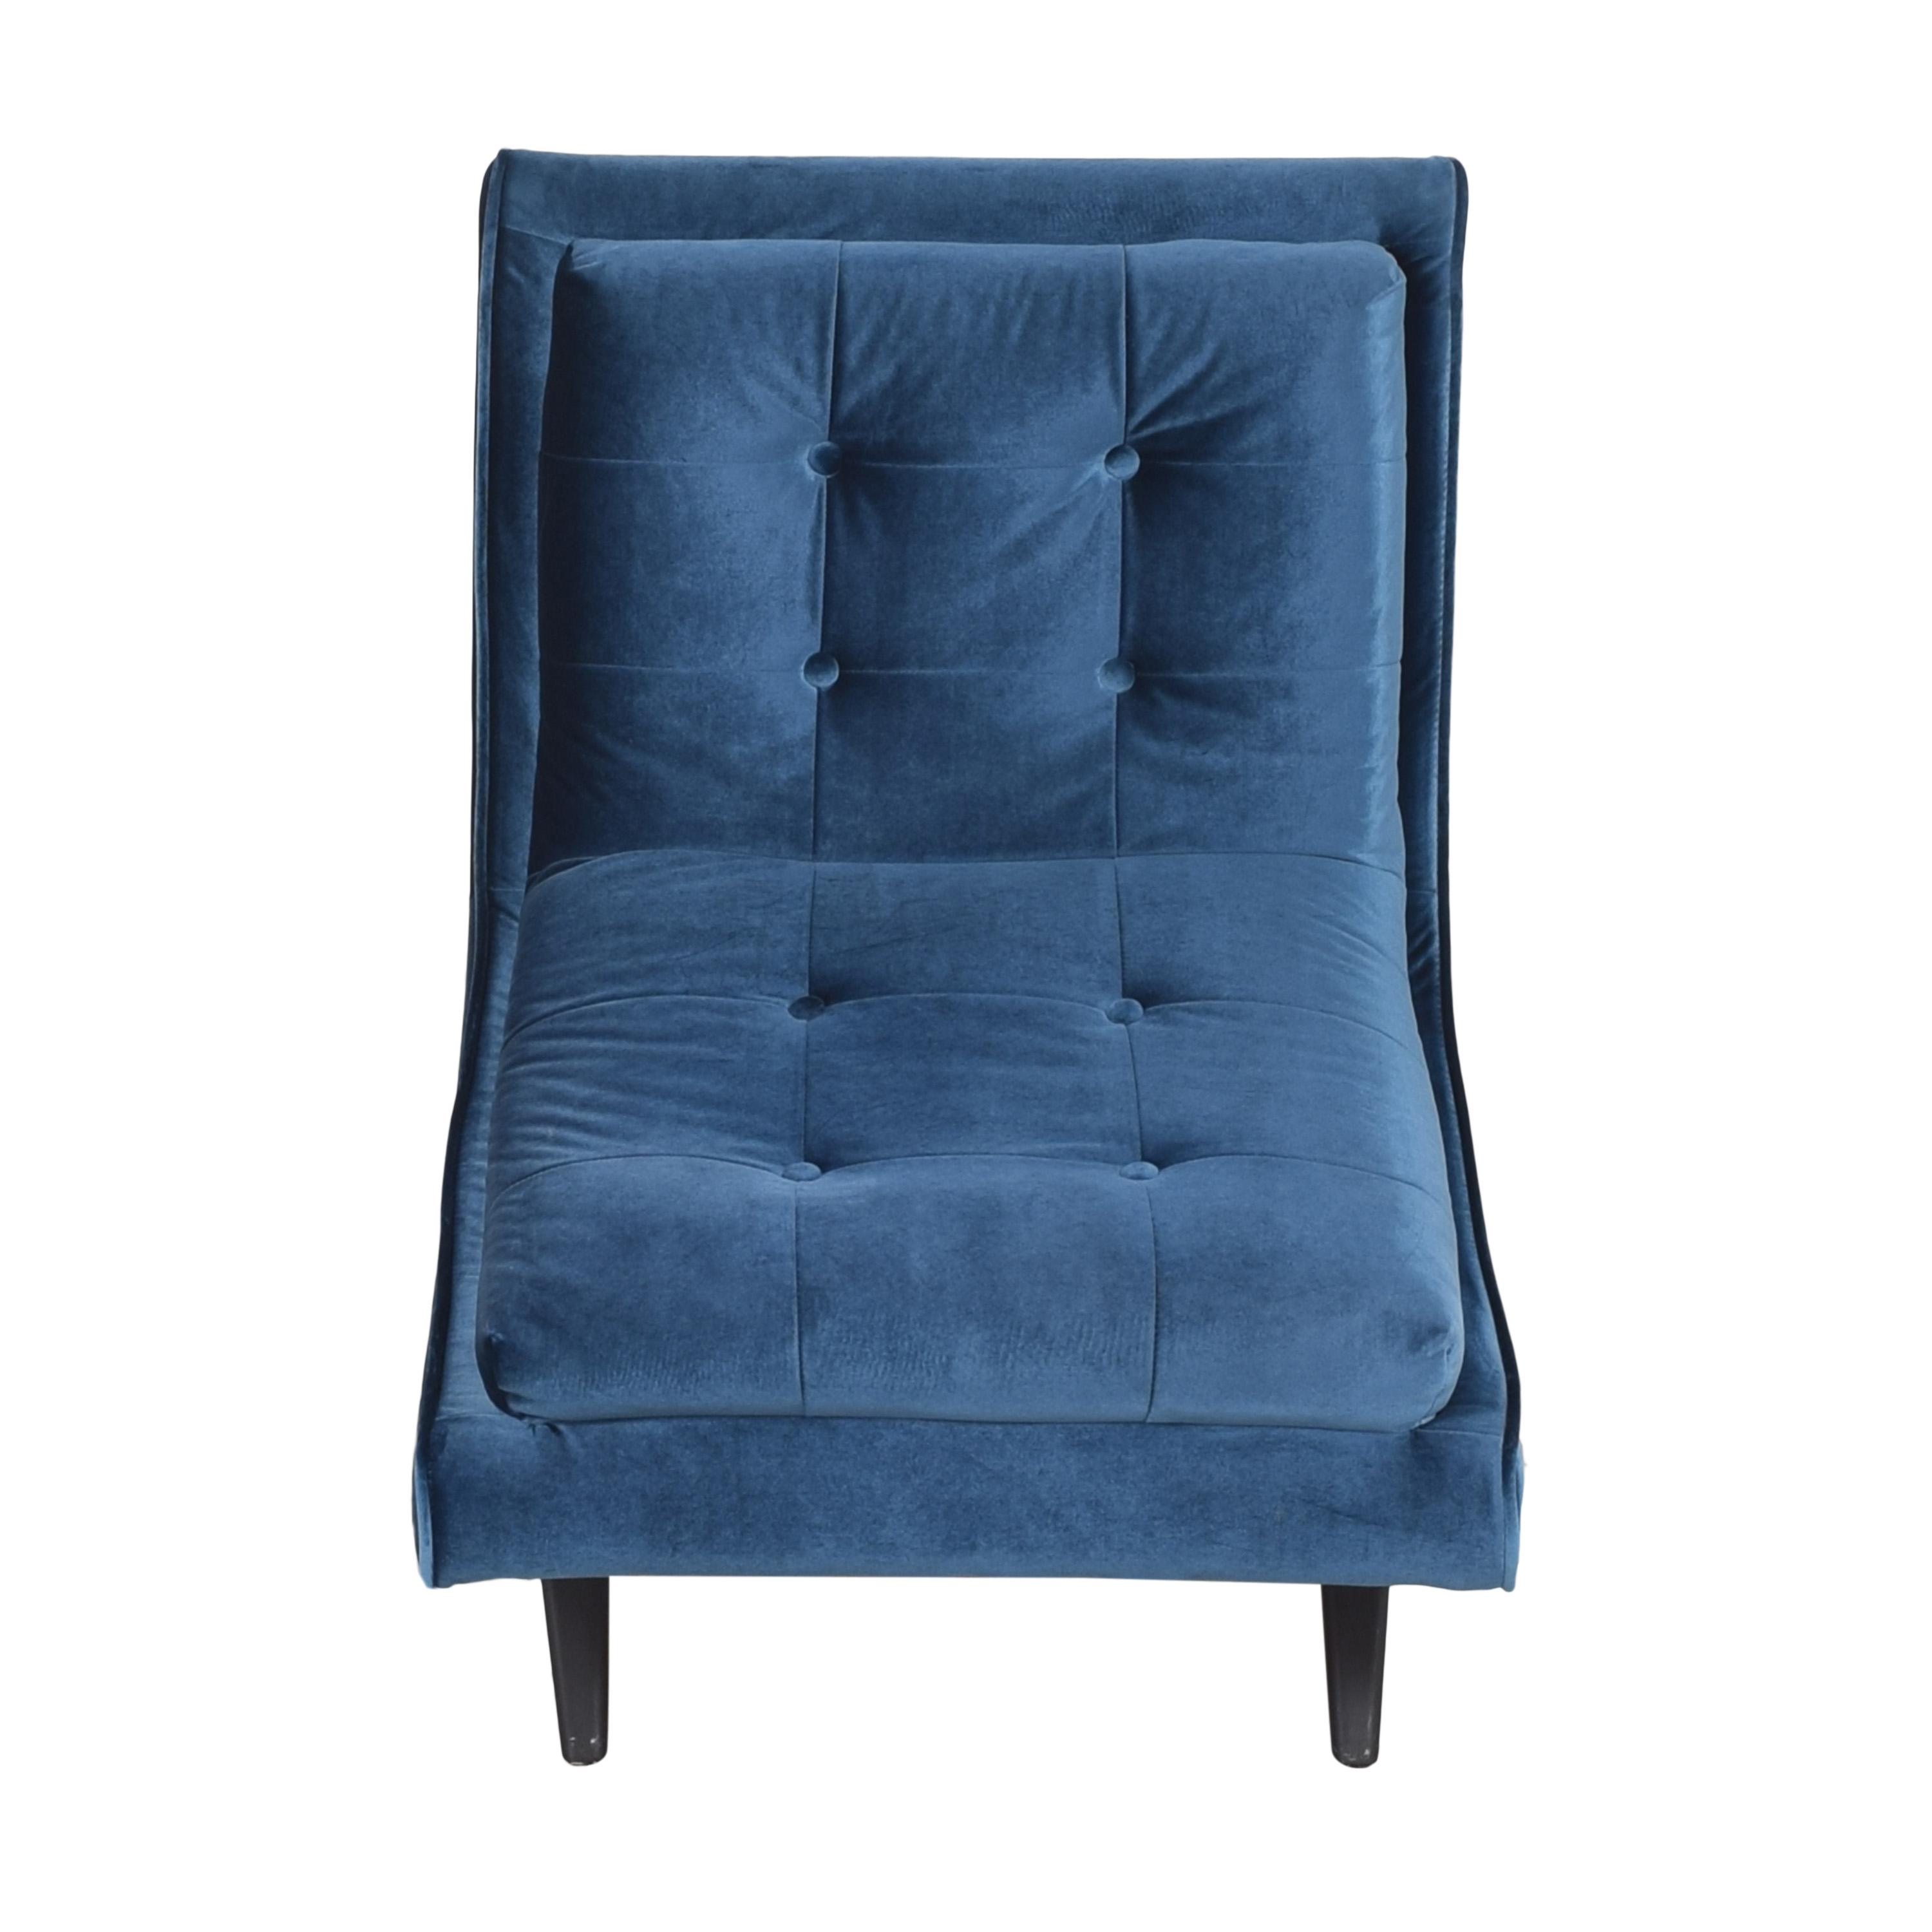 Armen Living Armen Living 5th Avenue Armless Swayback Lounge Chair on sale